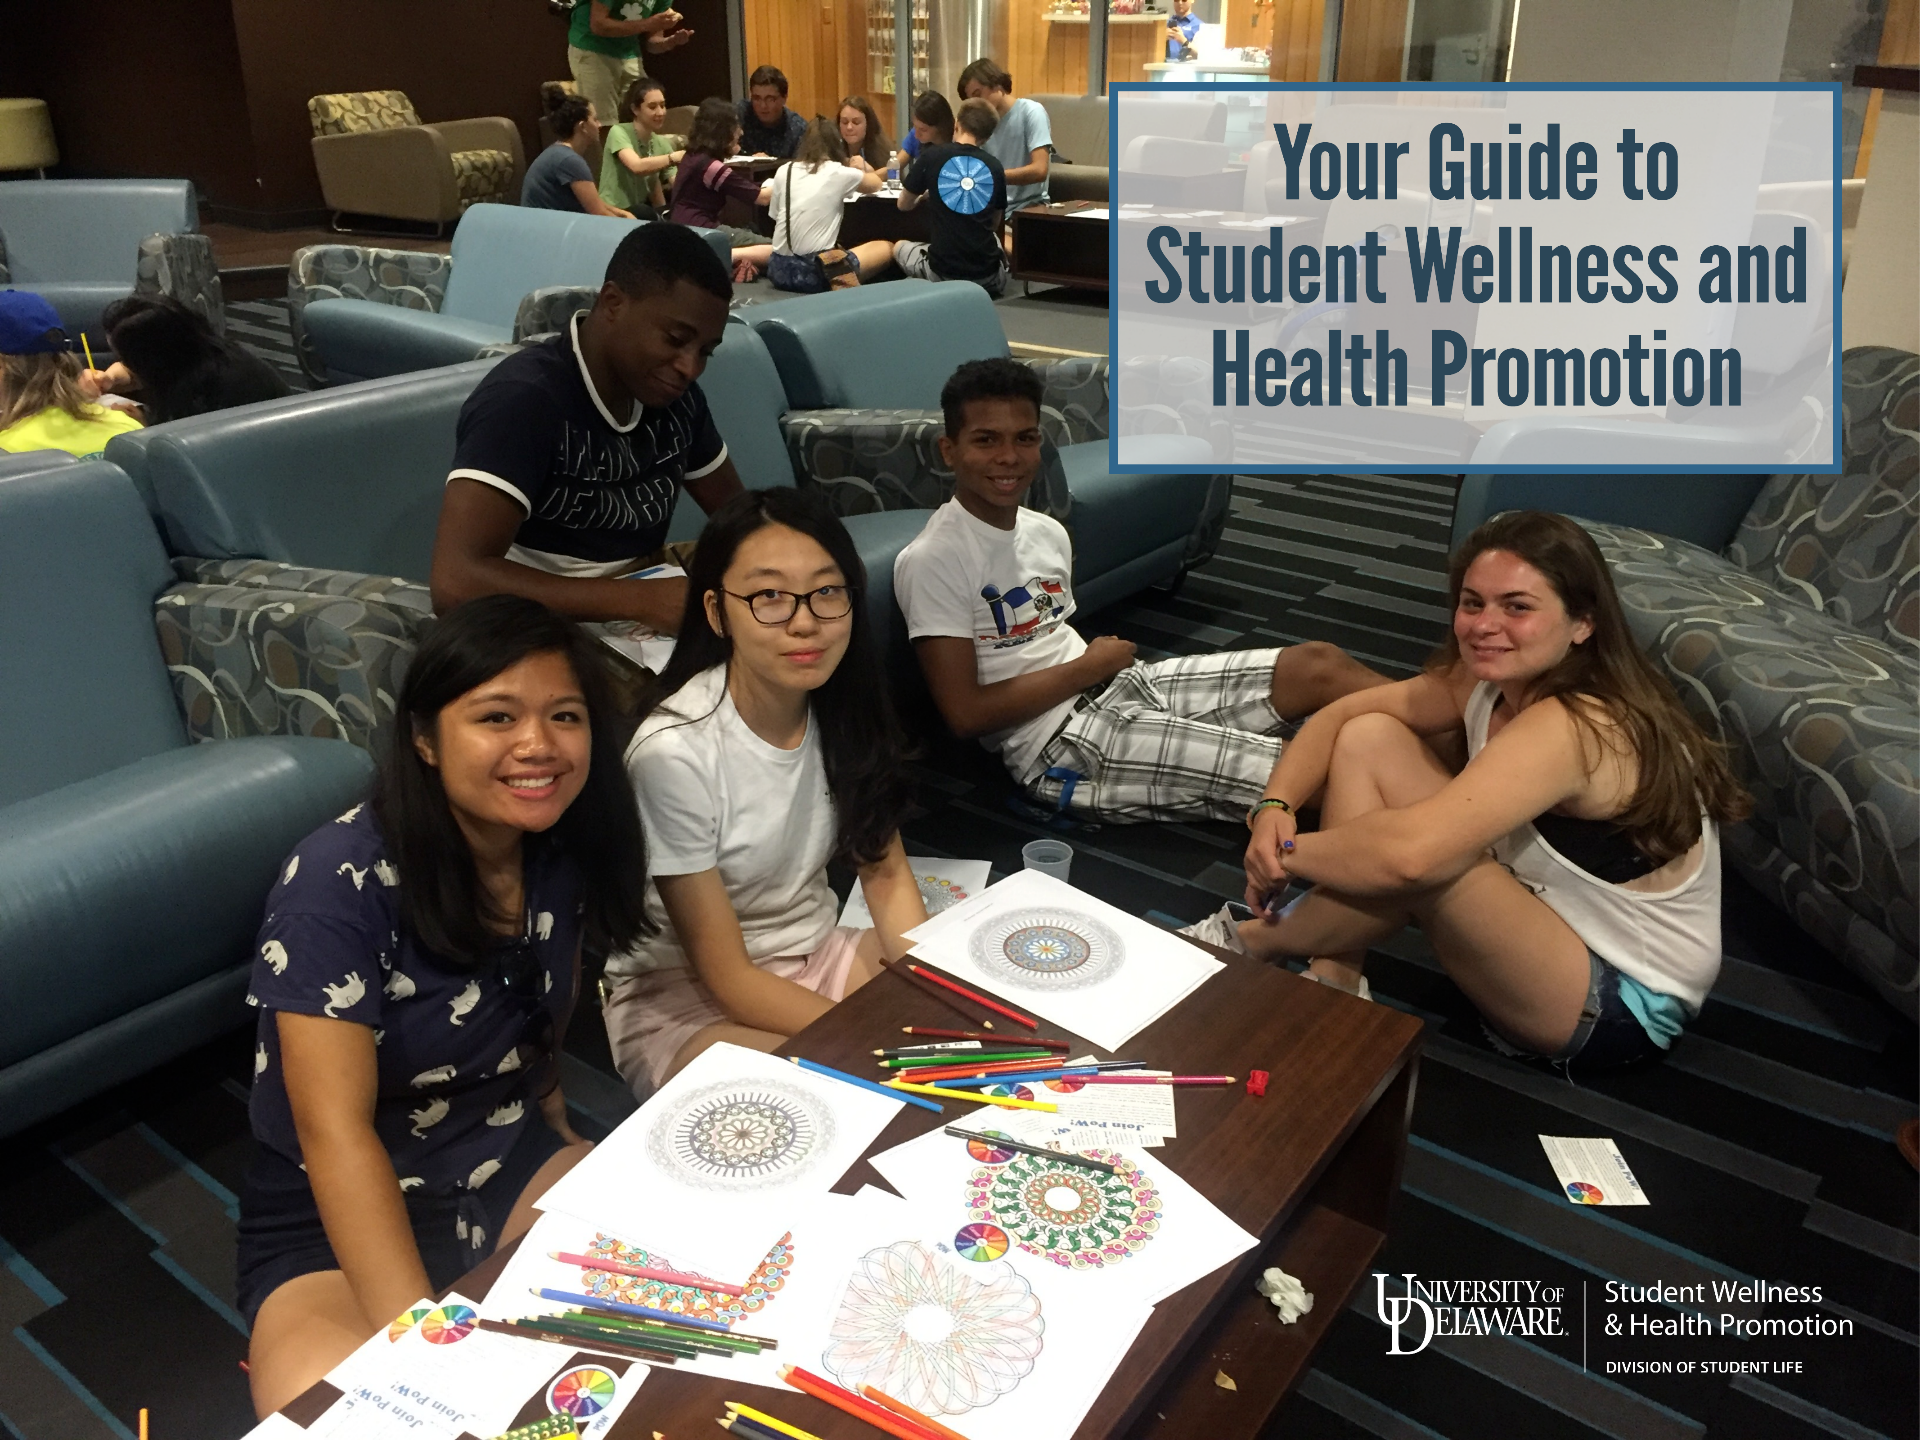 New Student Information Packet: Your Guide to Student Wellness and Health Promotion